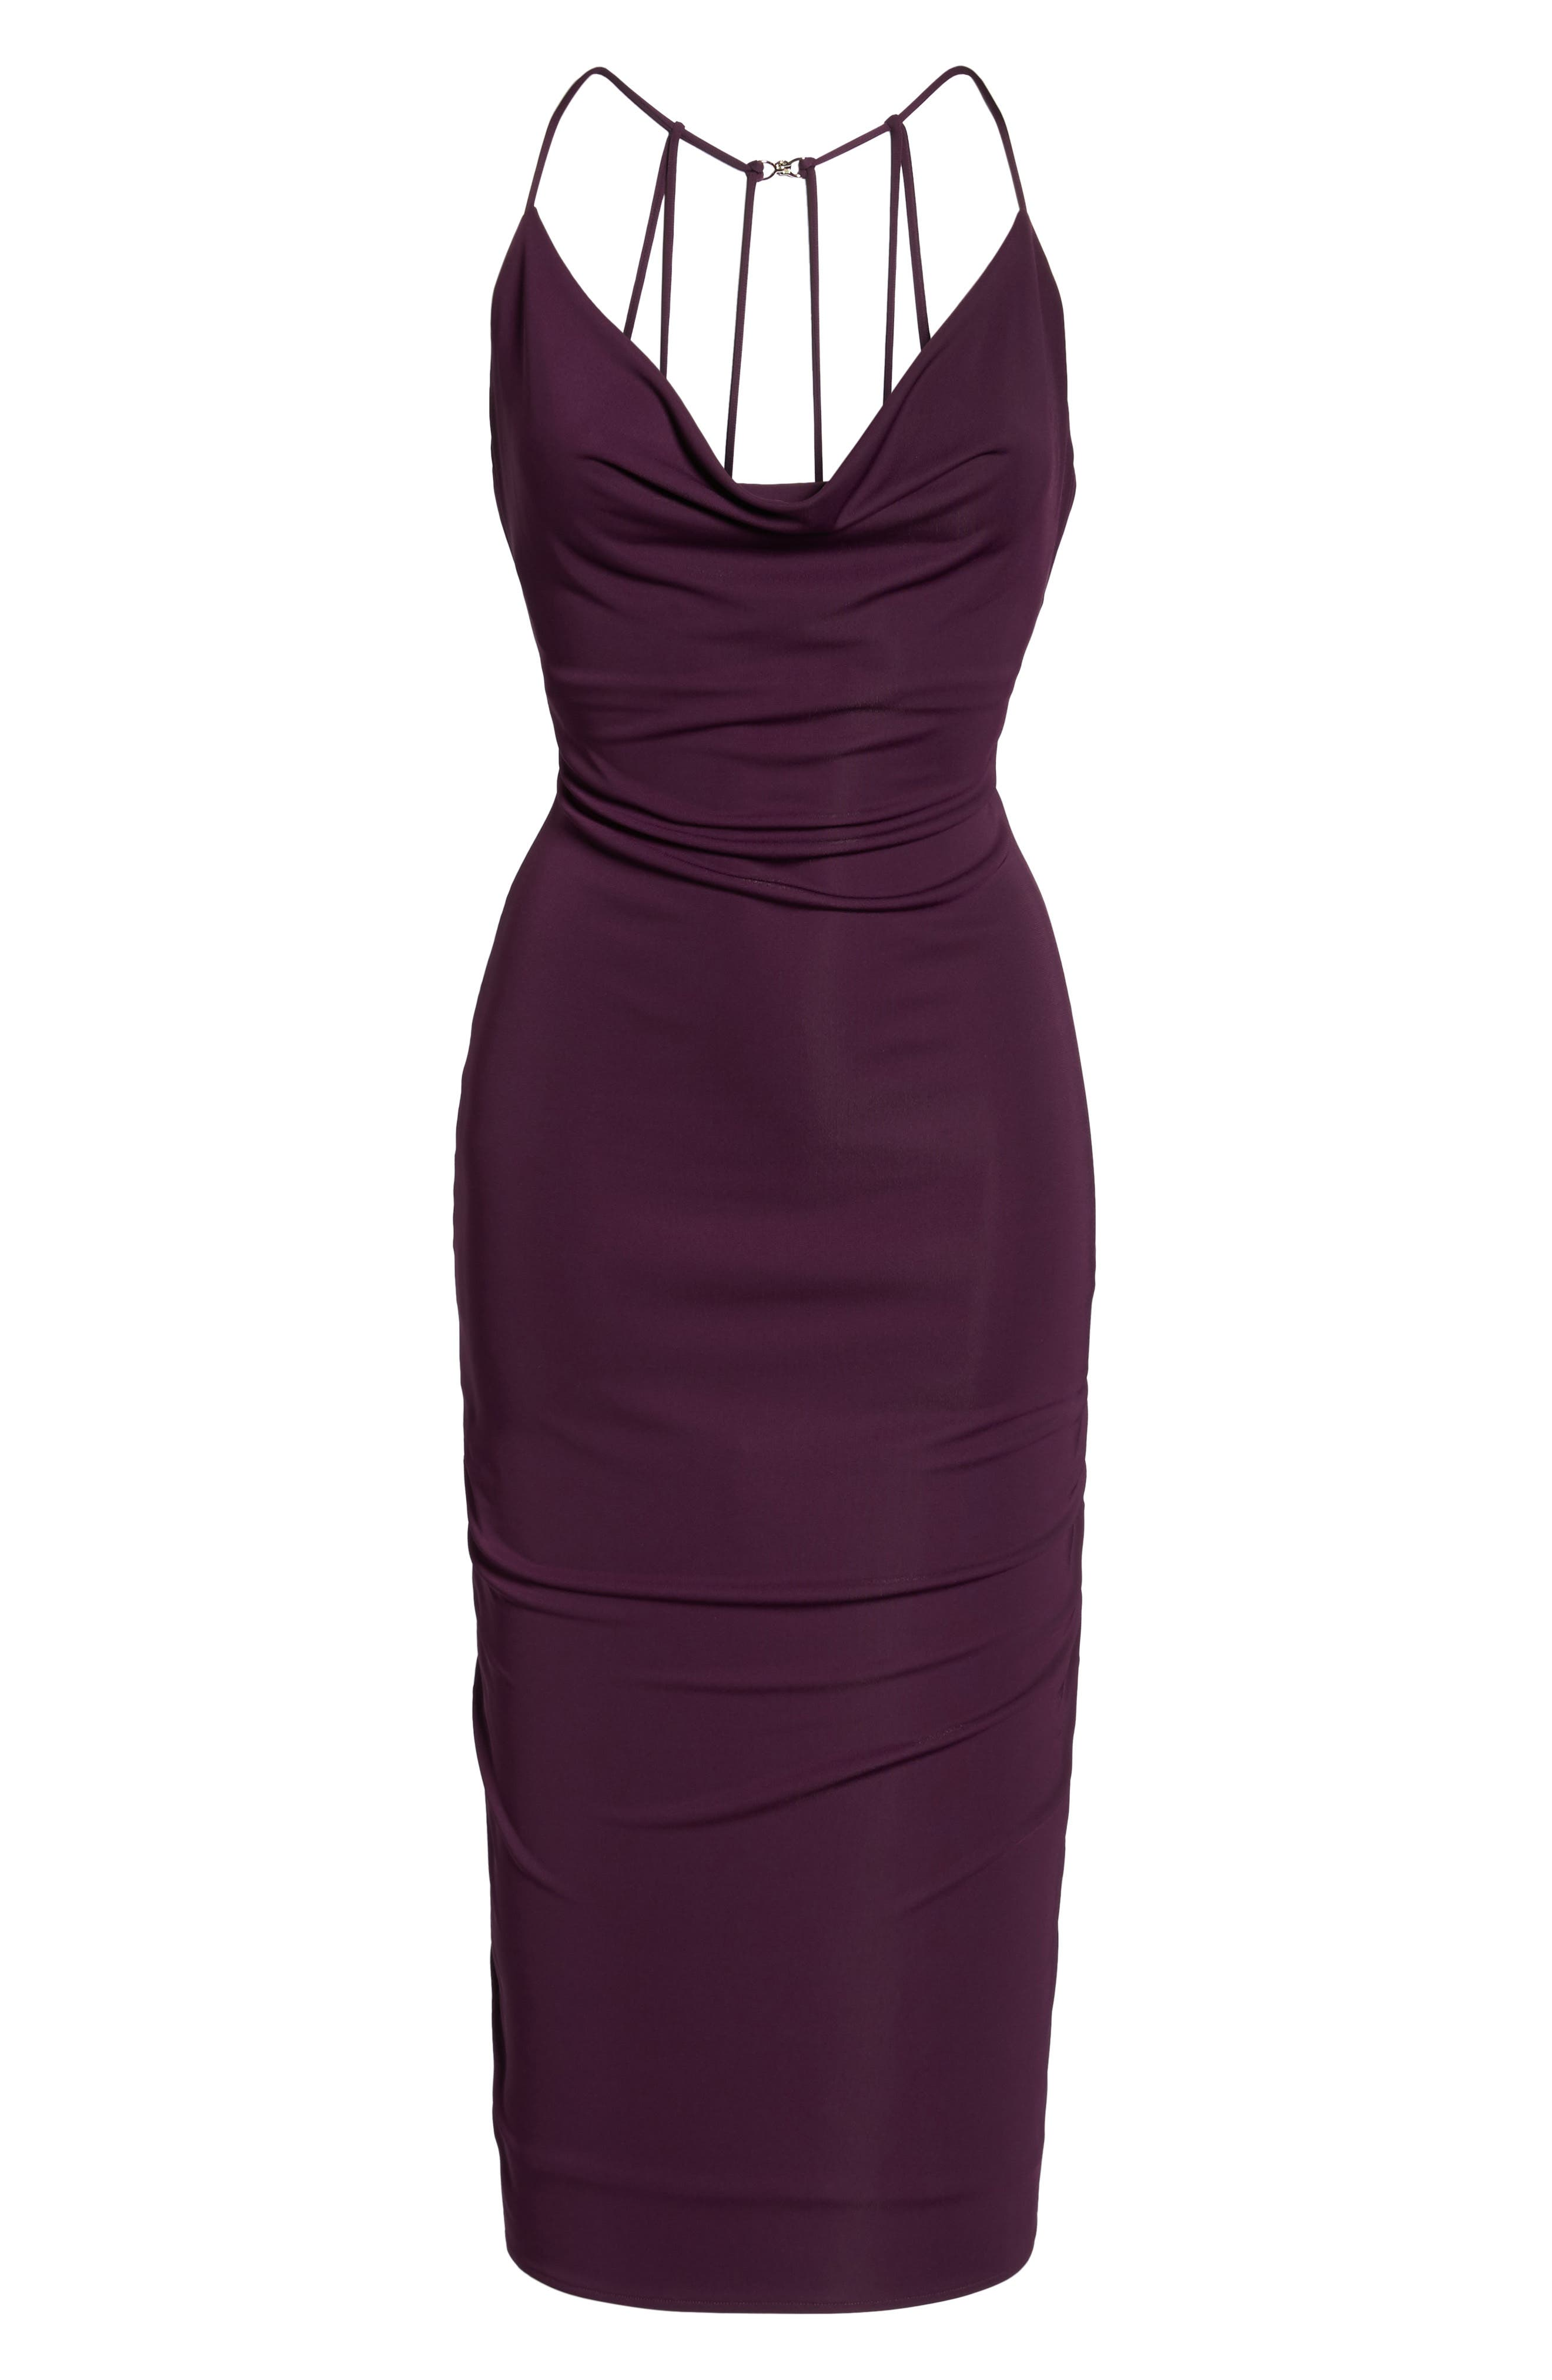 Cowl Neck Midi Dress,                             Alternate thumbnail 6, color,                             935